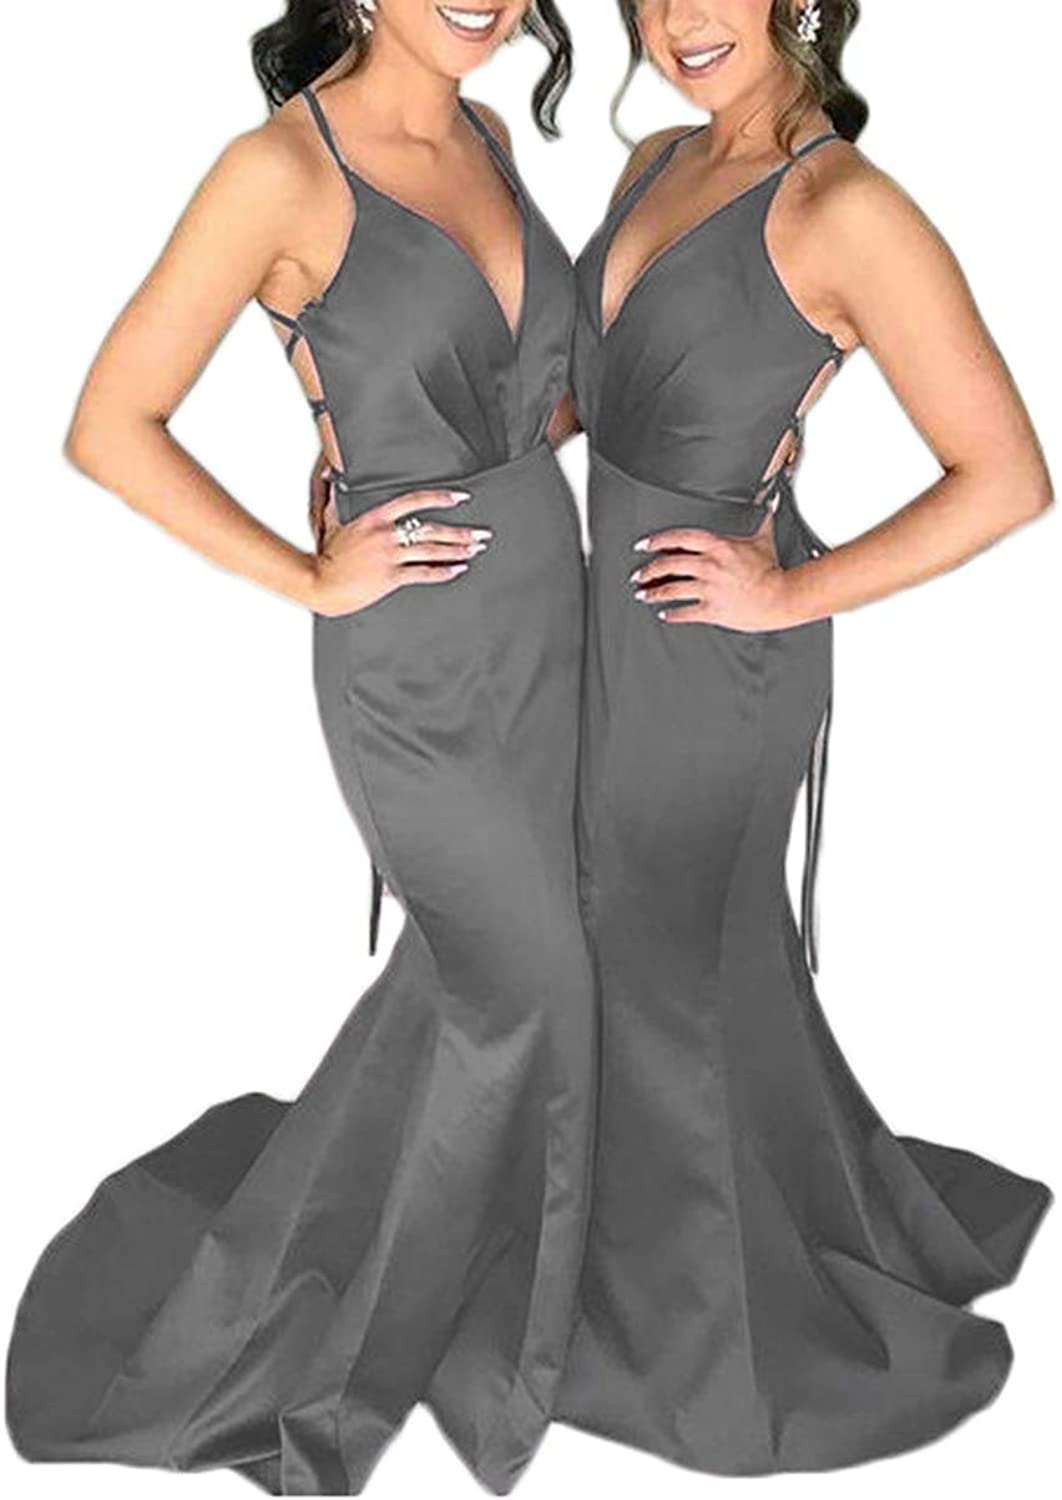 Alilith.Z Sexy Spaghetti Strap Mermaid Prom Evening Dresses 2019 Long Satin Bridesmaid Dresses Party Gowns for Women